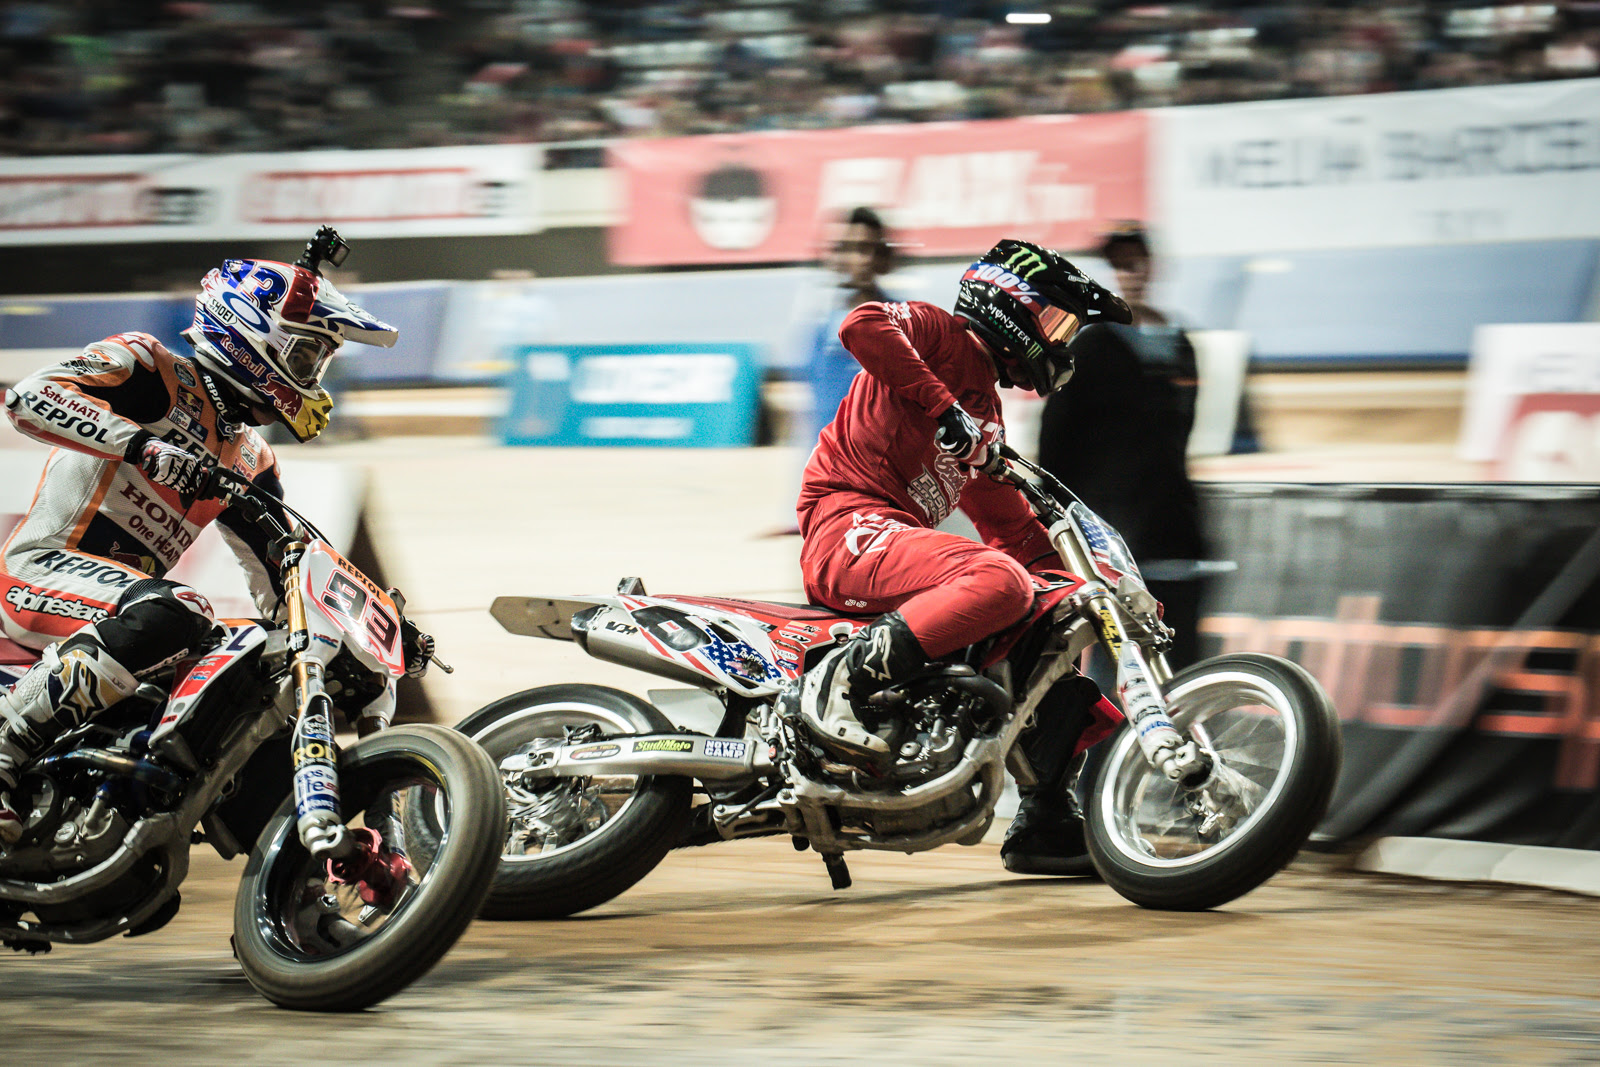 American Flat Track's Brad Baker slated to take on Marc Marquez at the Superprestigio